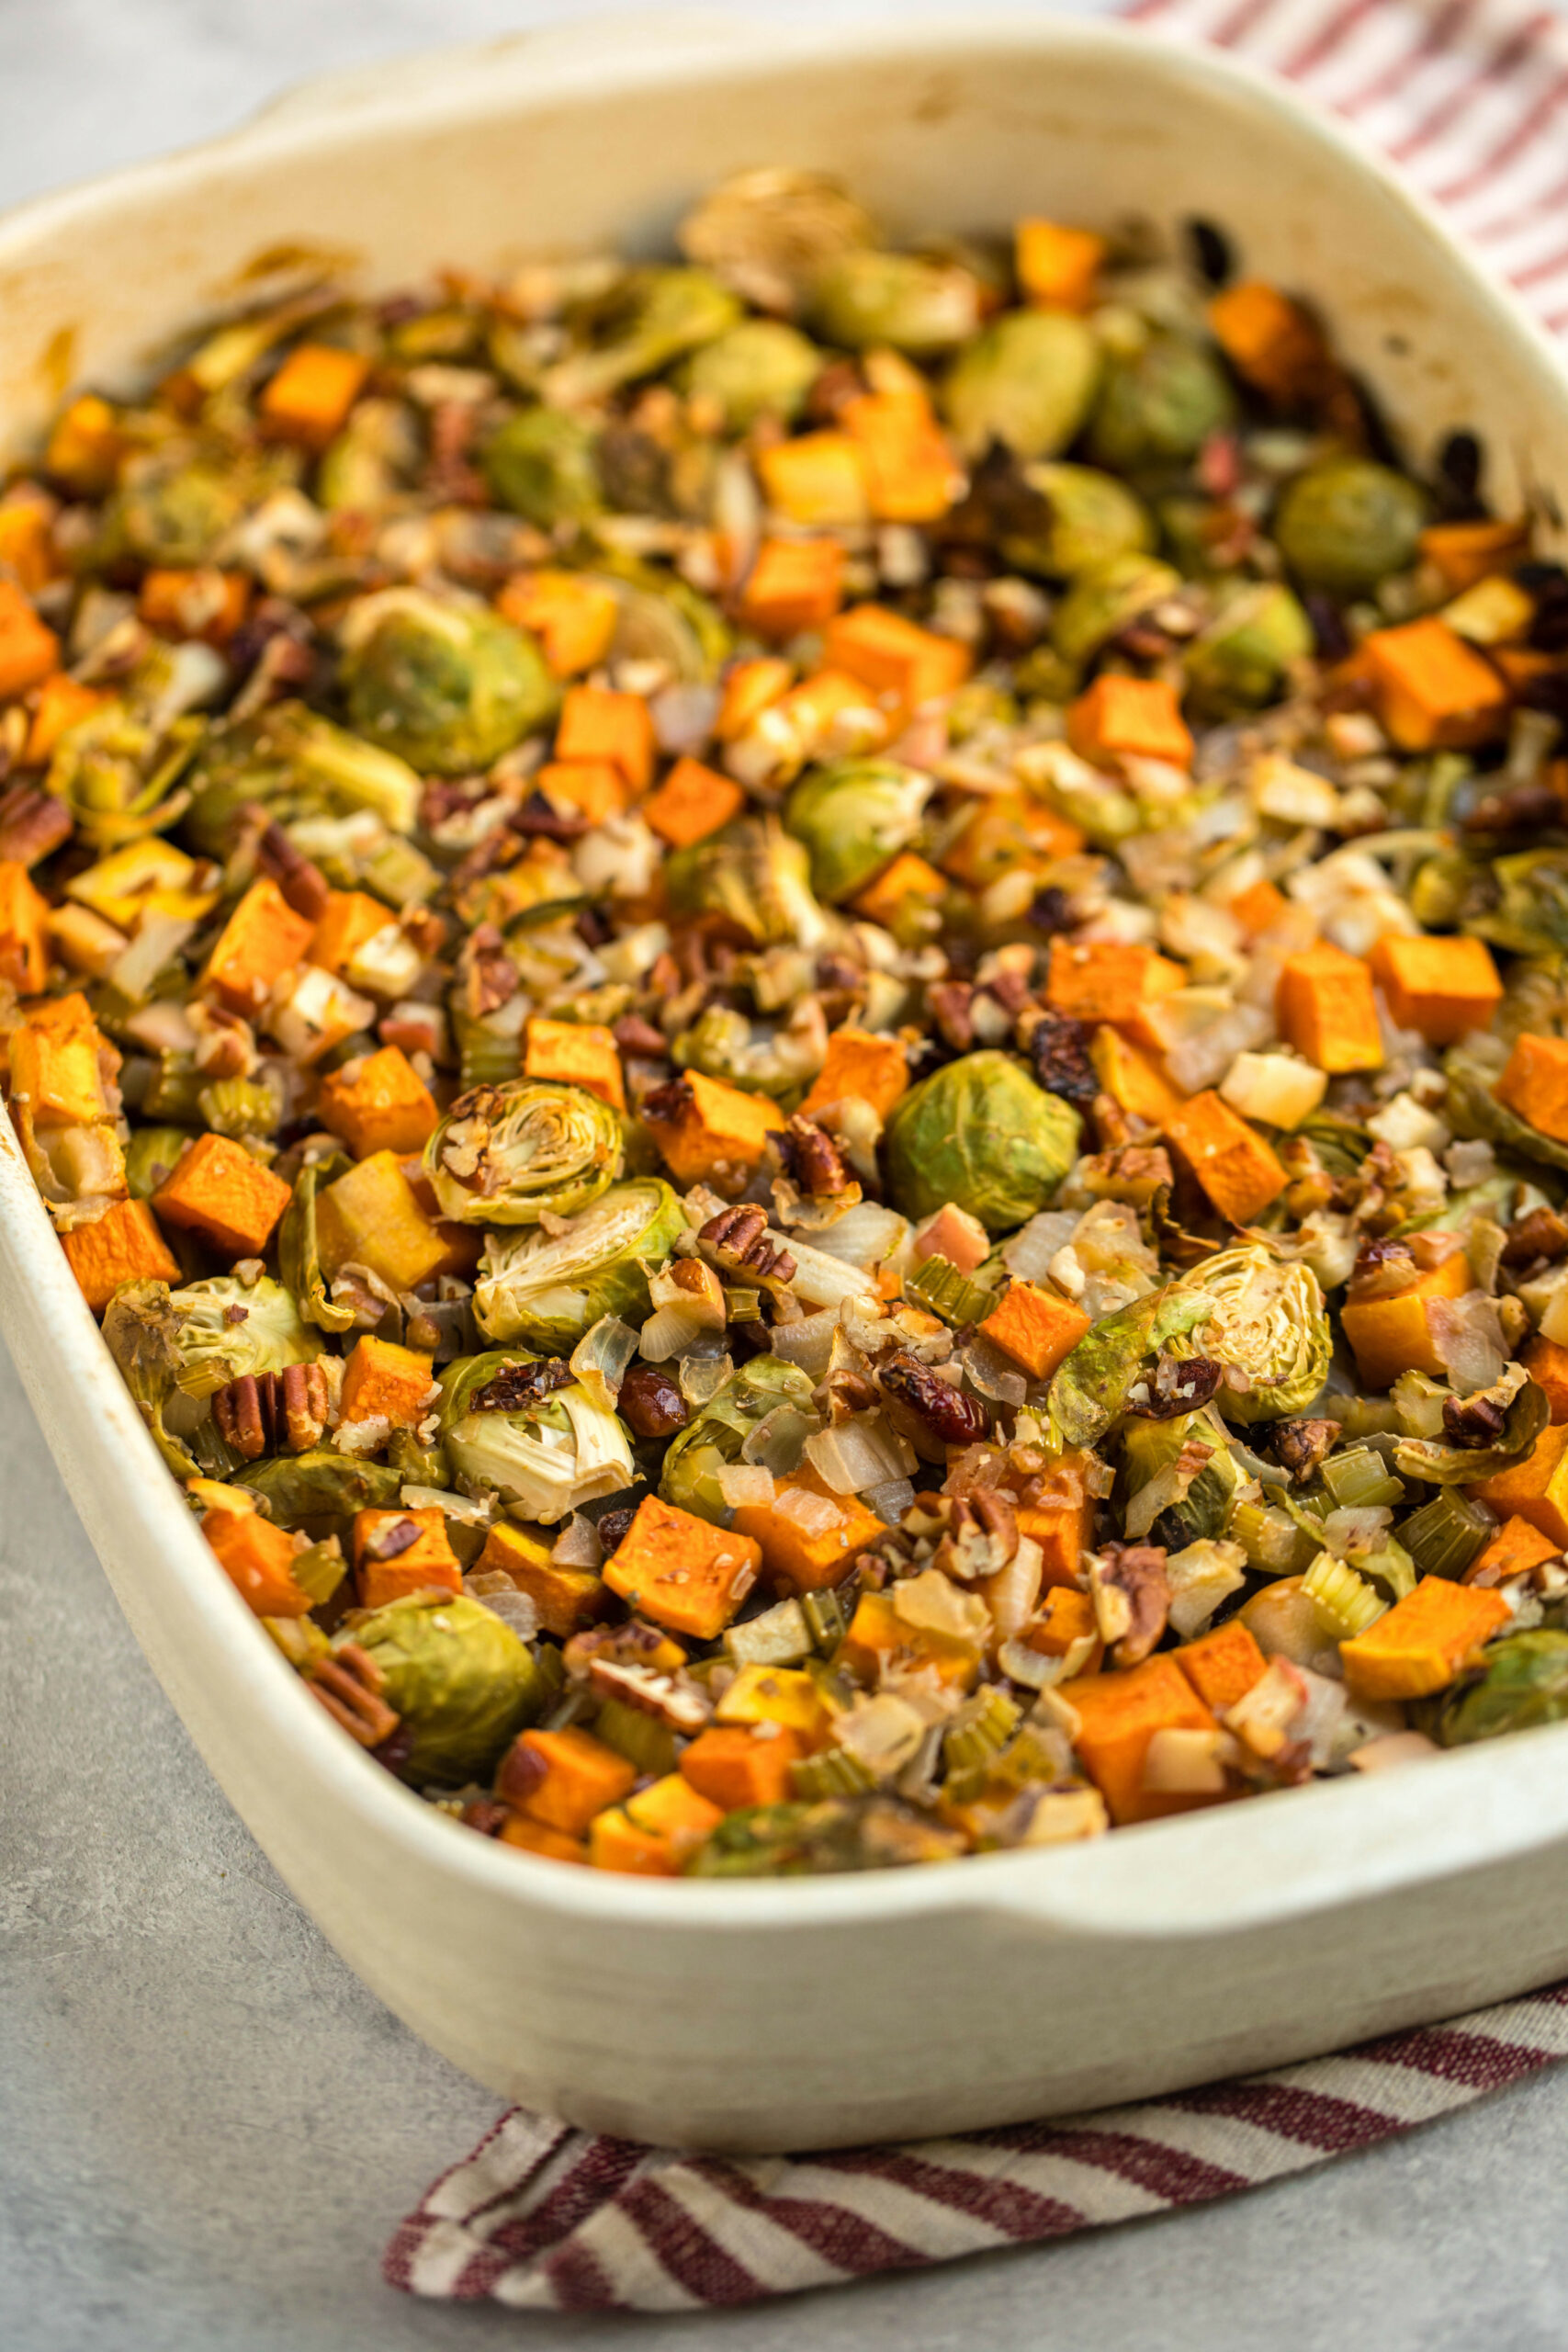 Fall Roasted Vegetable Casserole - From My Bowl - recipes vegetarian casseroles